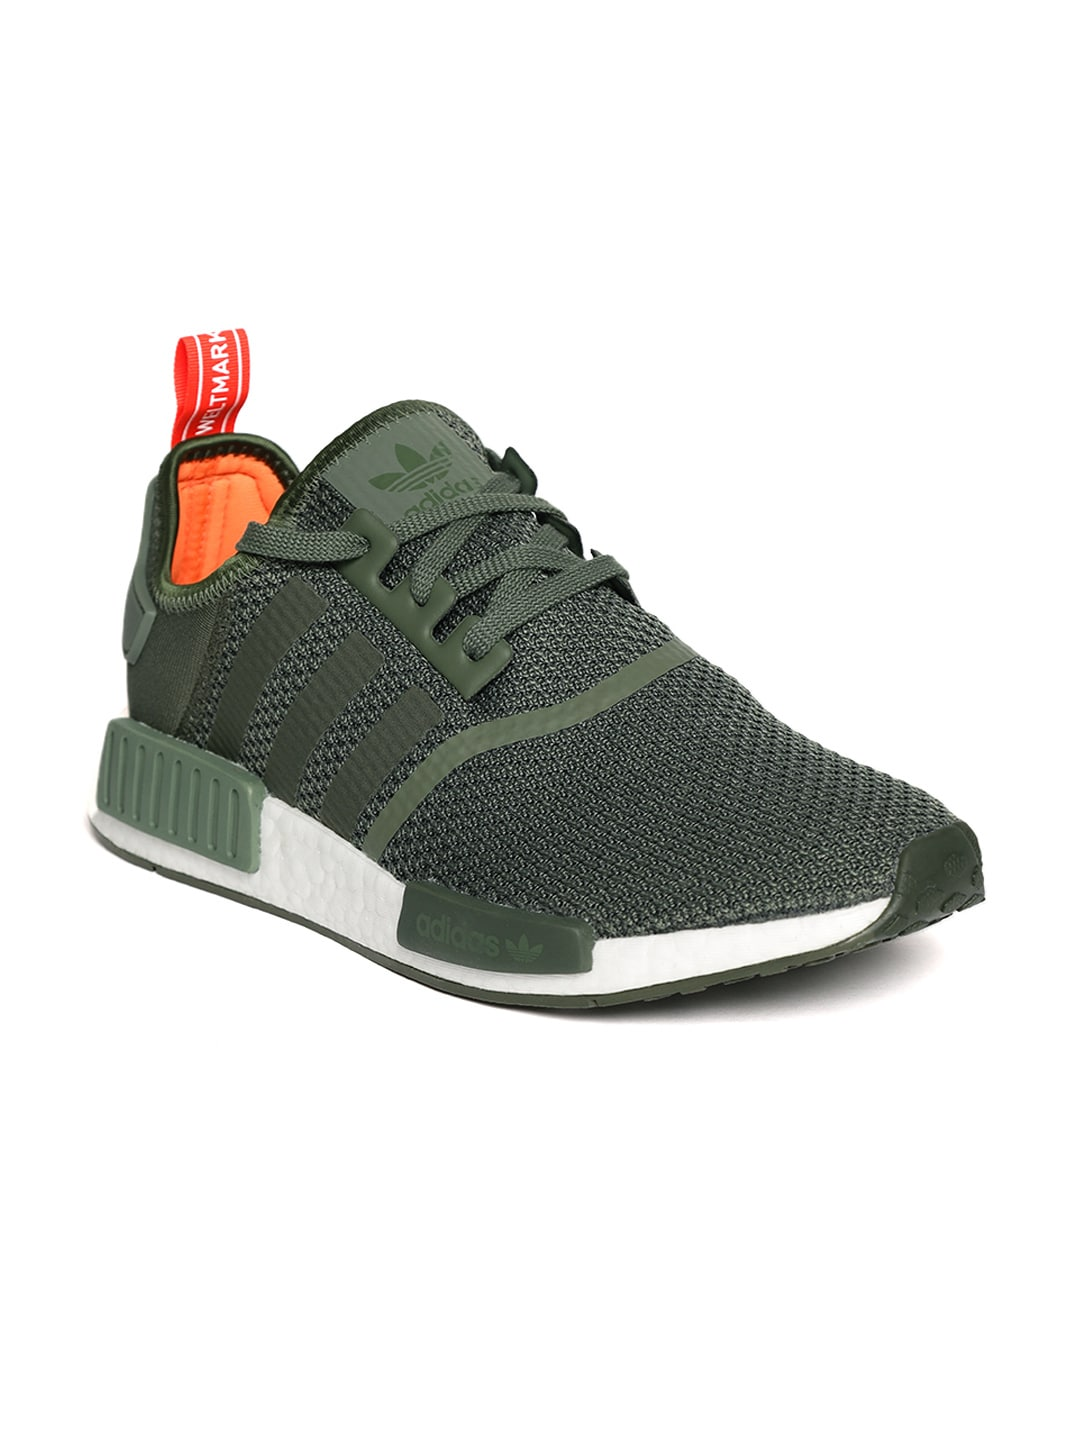 0a0ec874272d42 Adidas Nmd - Buy Adidas Nmd online in India